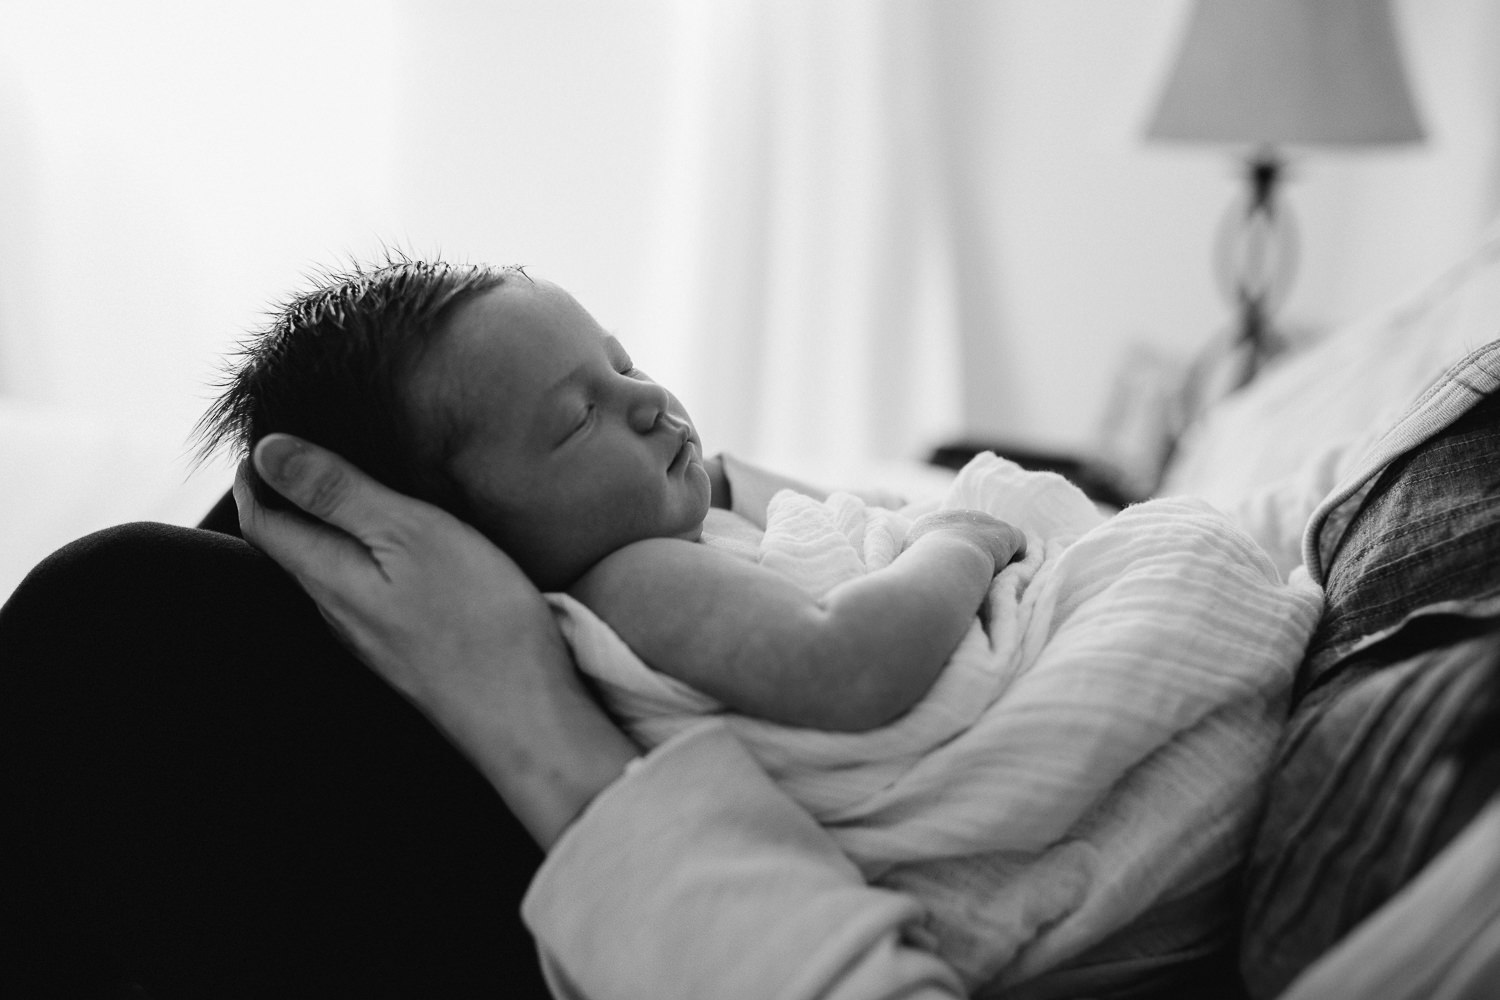 mom sitting on bed holding 2 week old baby daughter who is sleeping - Newmarket lifestyle photography session